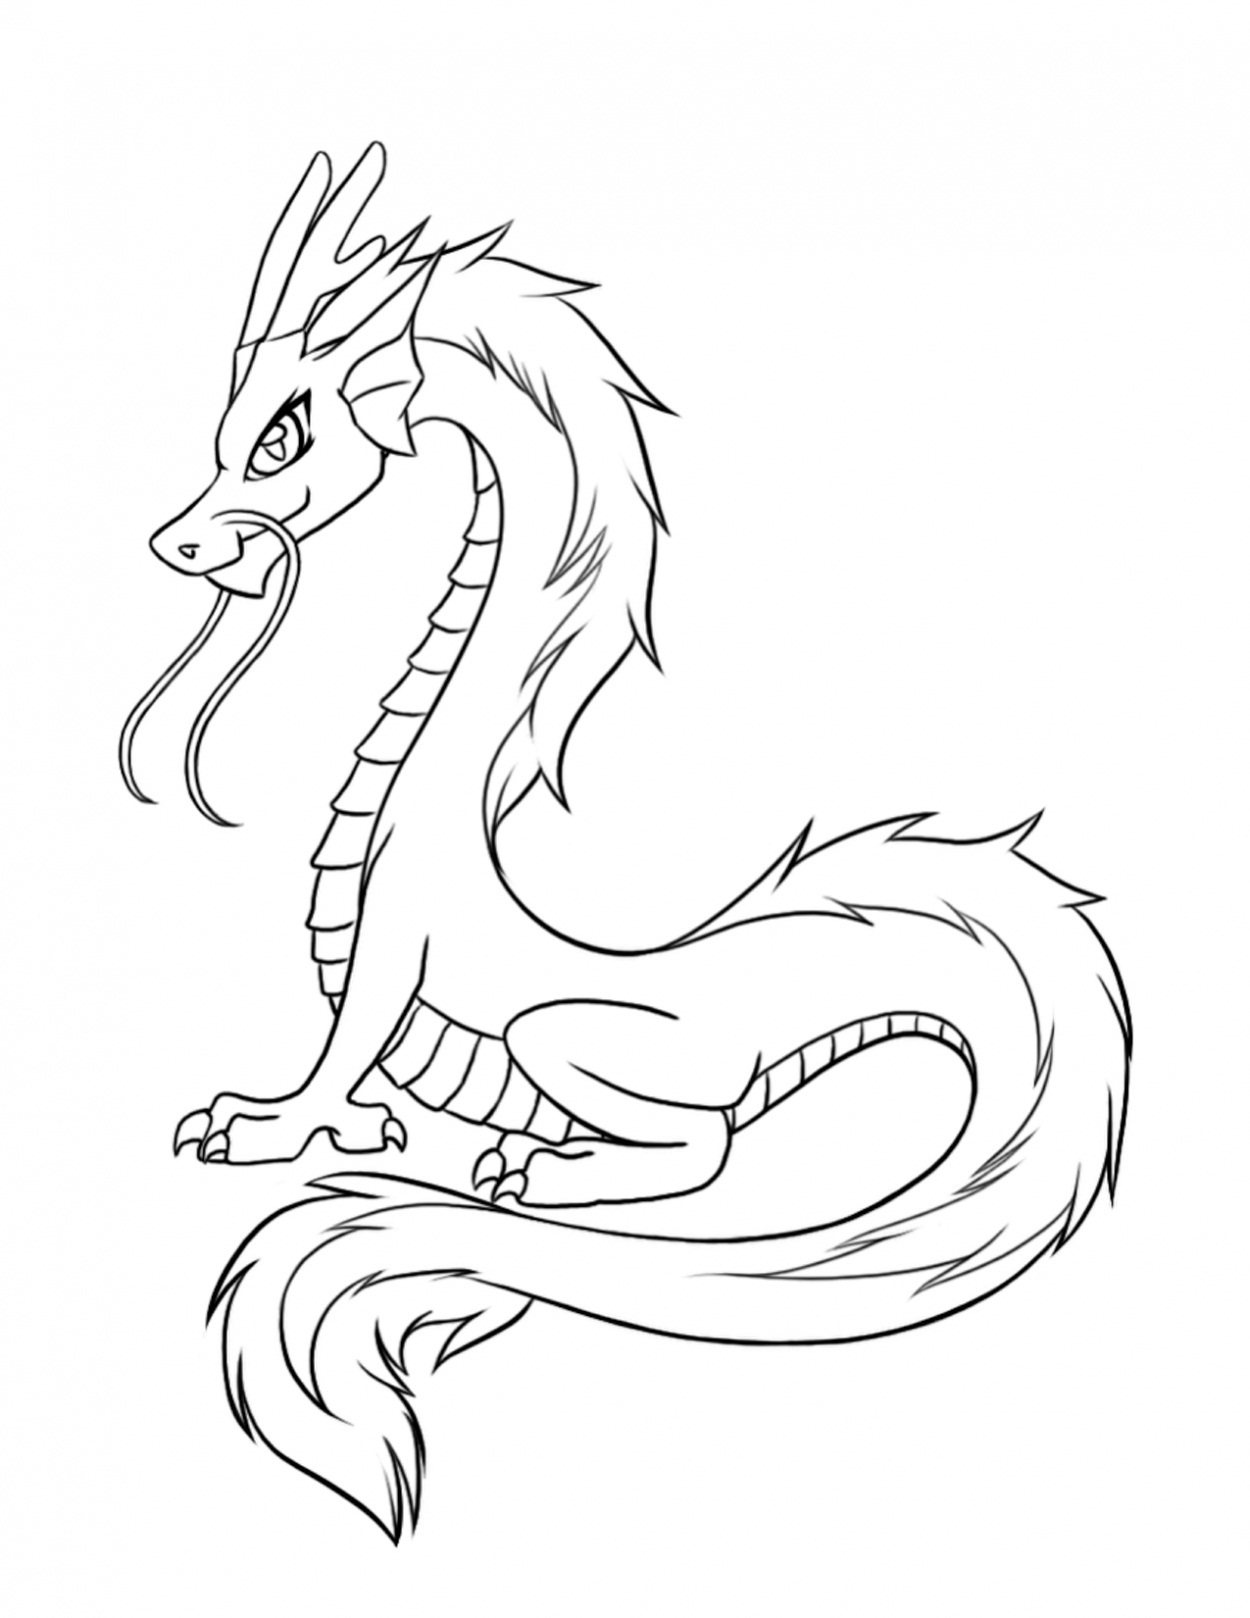 realistic dragon drawing at getdrawings com free for personal use